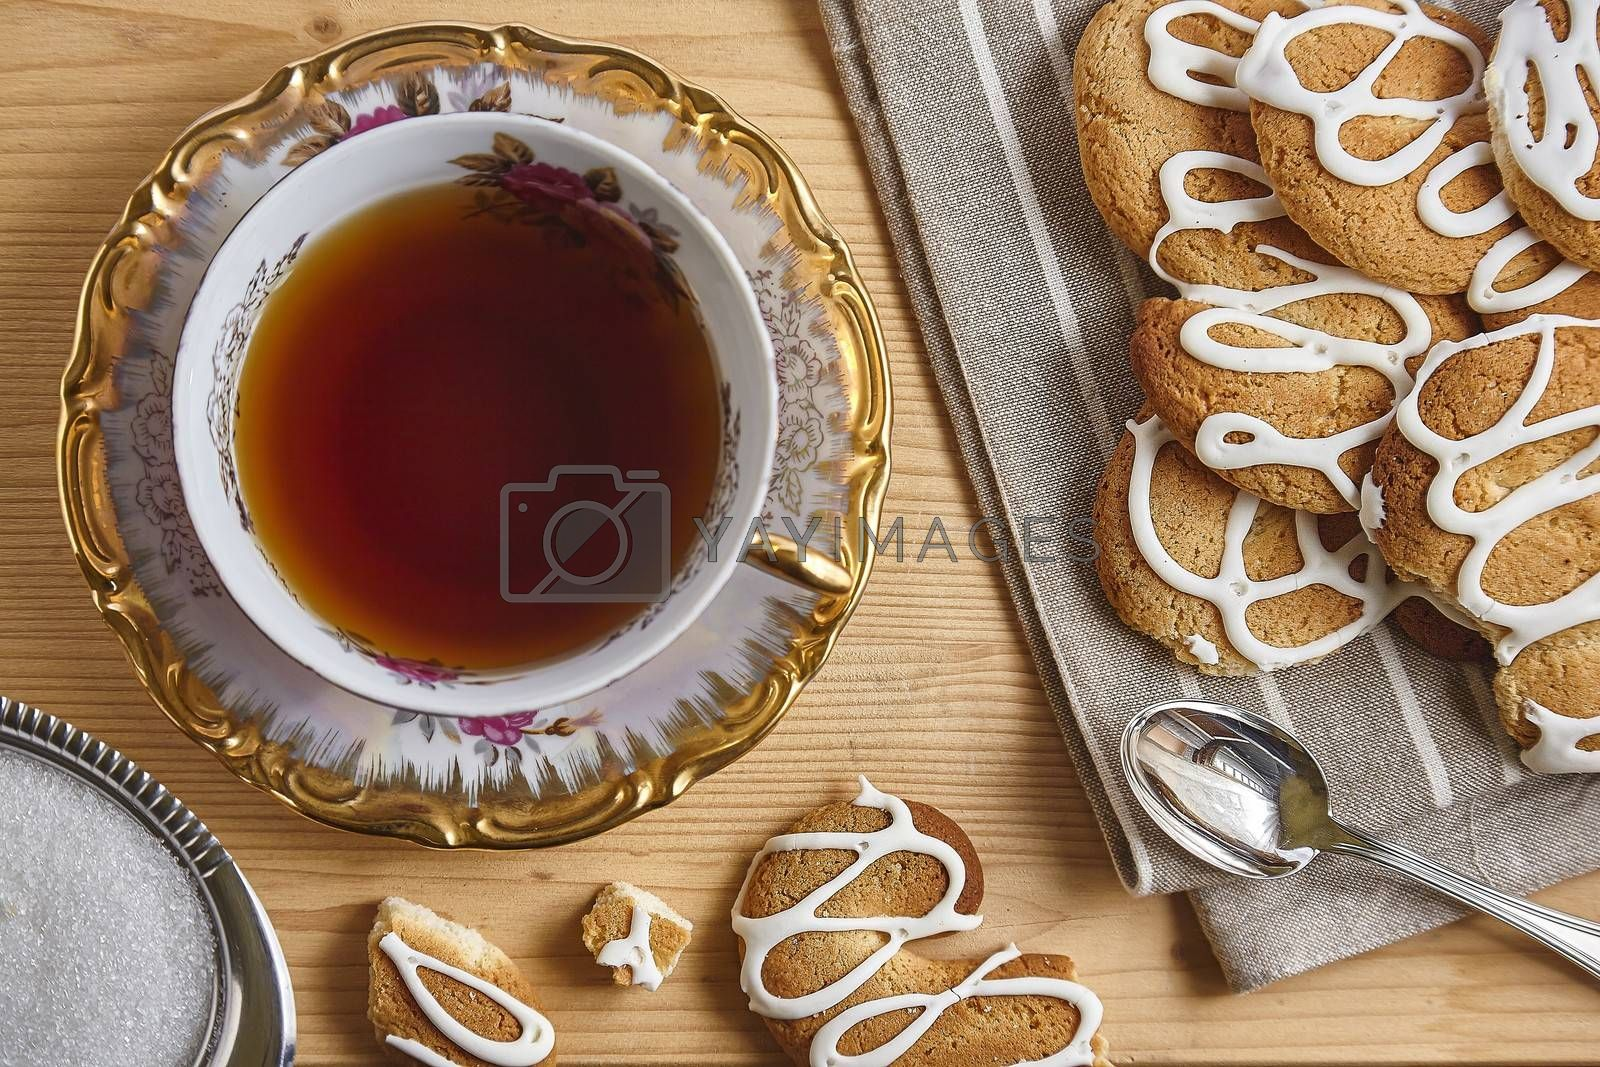 Combination of food with tea and biscuits on a wooden table from above